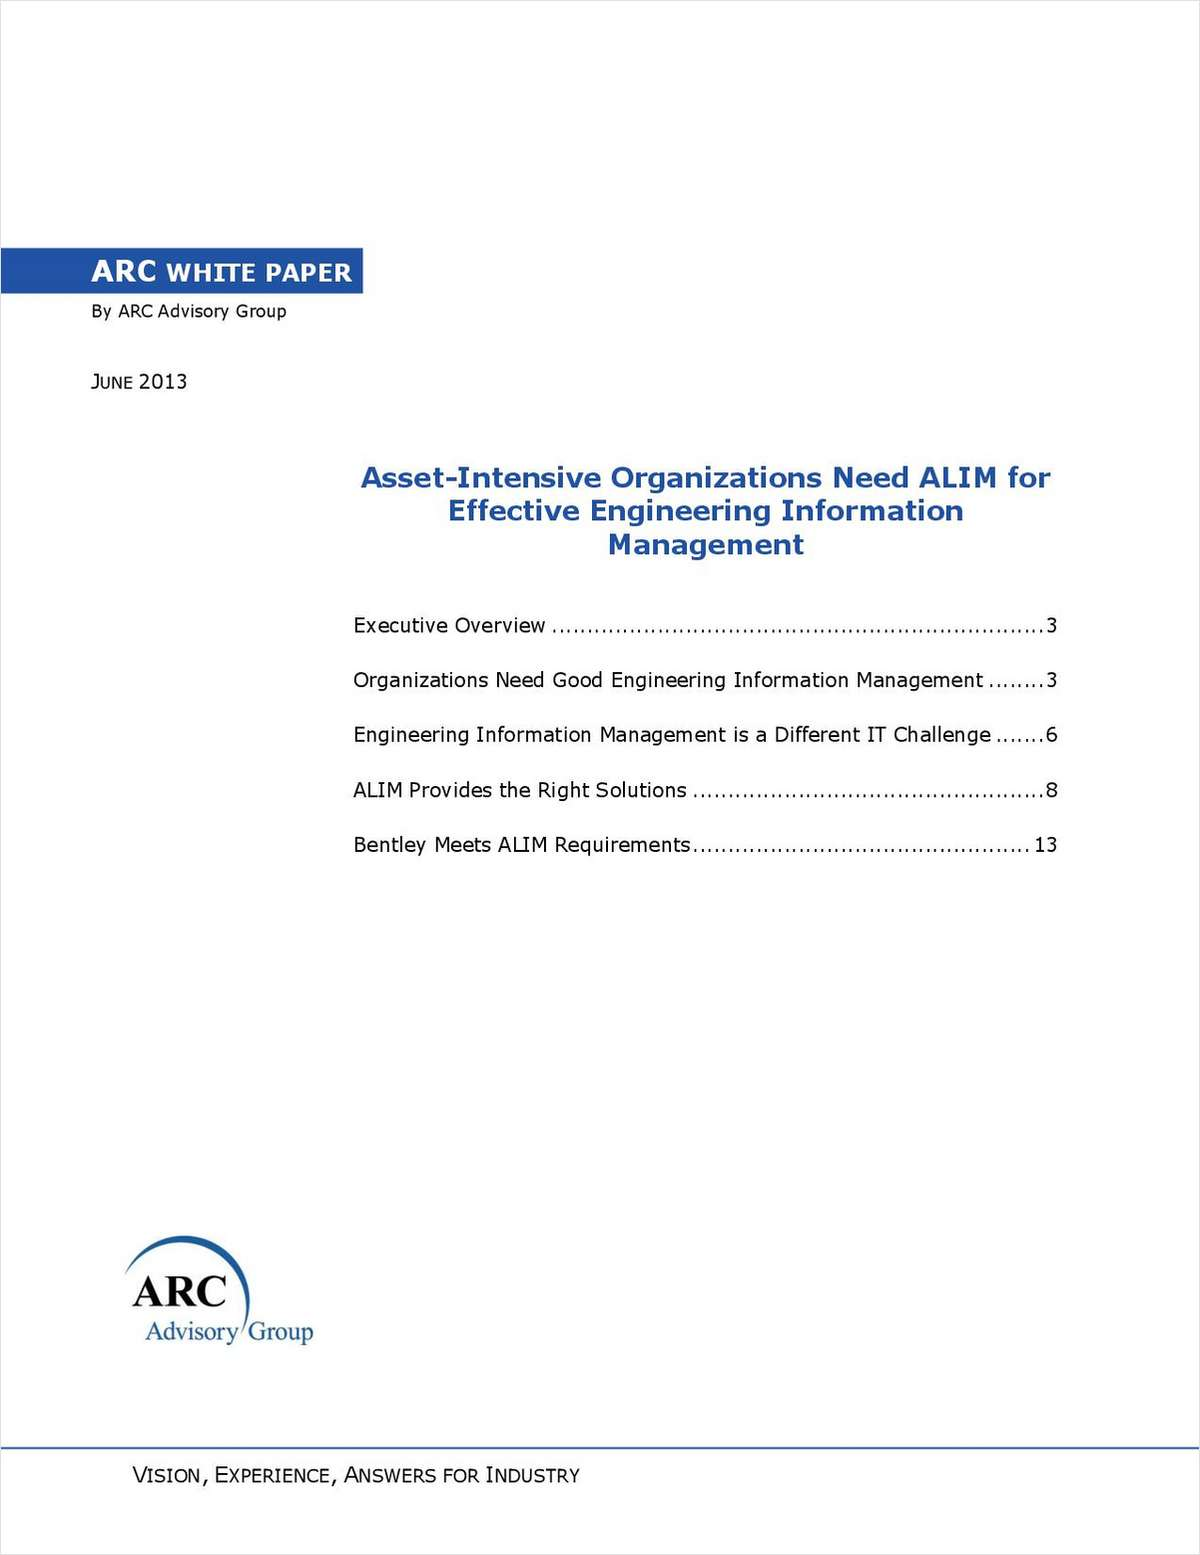 Asset-Intensive Organizations Need ALIM (Asset Lifecycle Information Management) for Effective Engineering Information Management